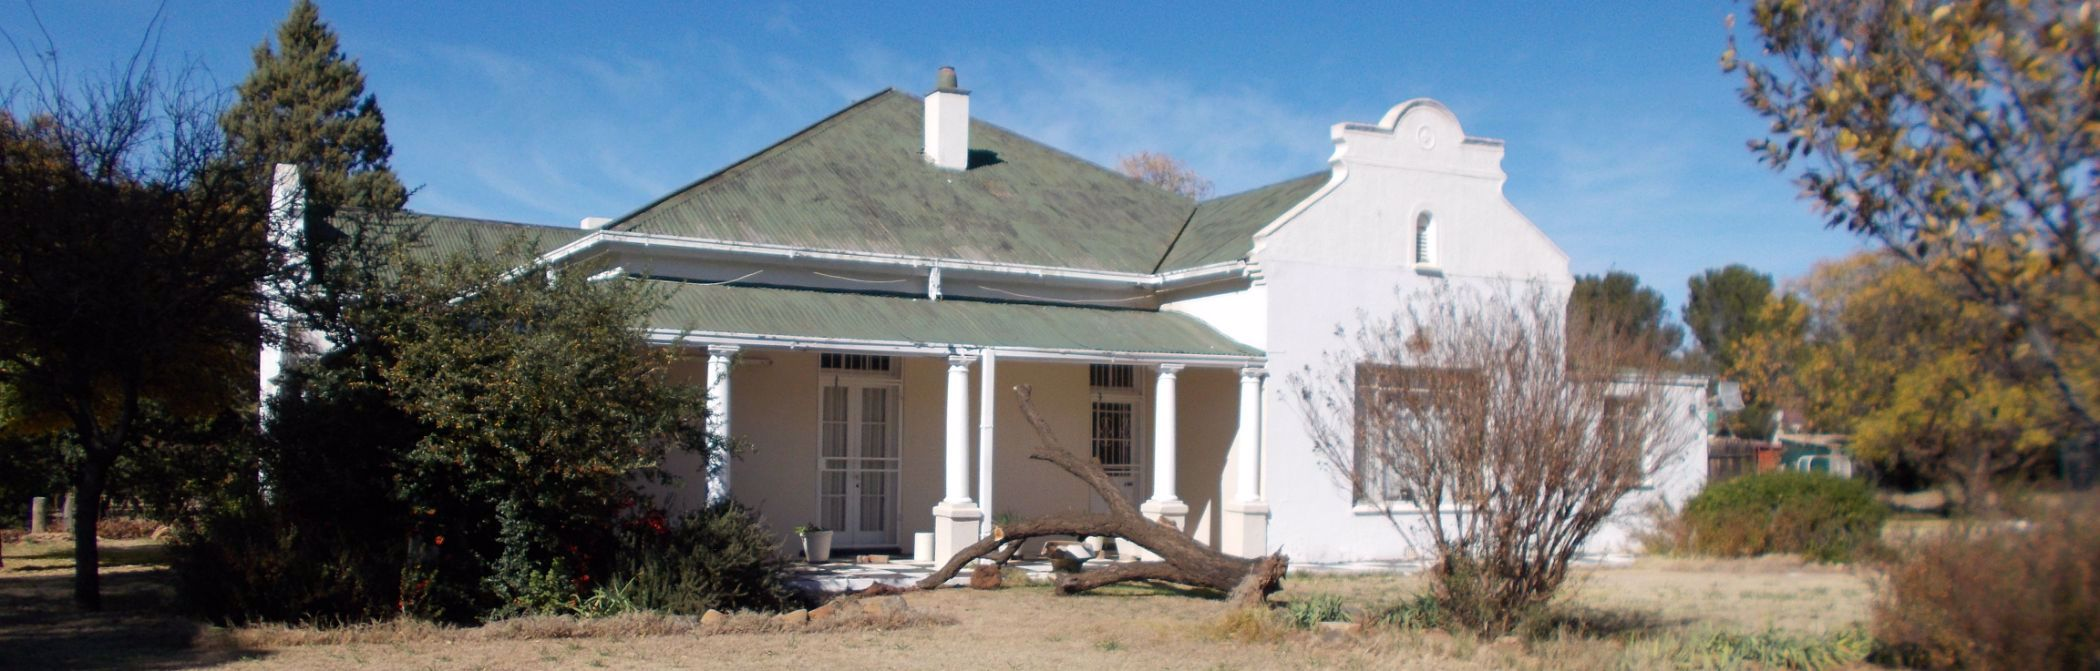 3 bedroom house for sale in Smithfield